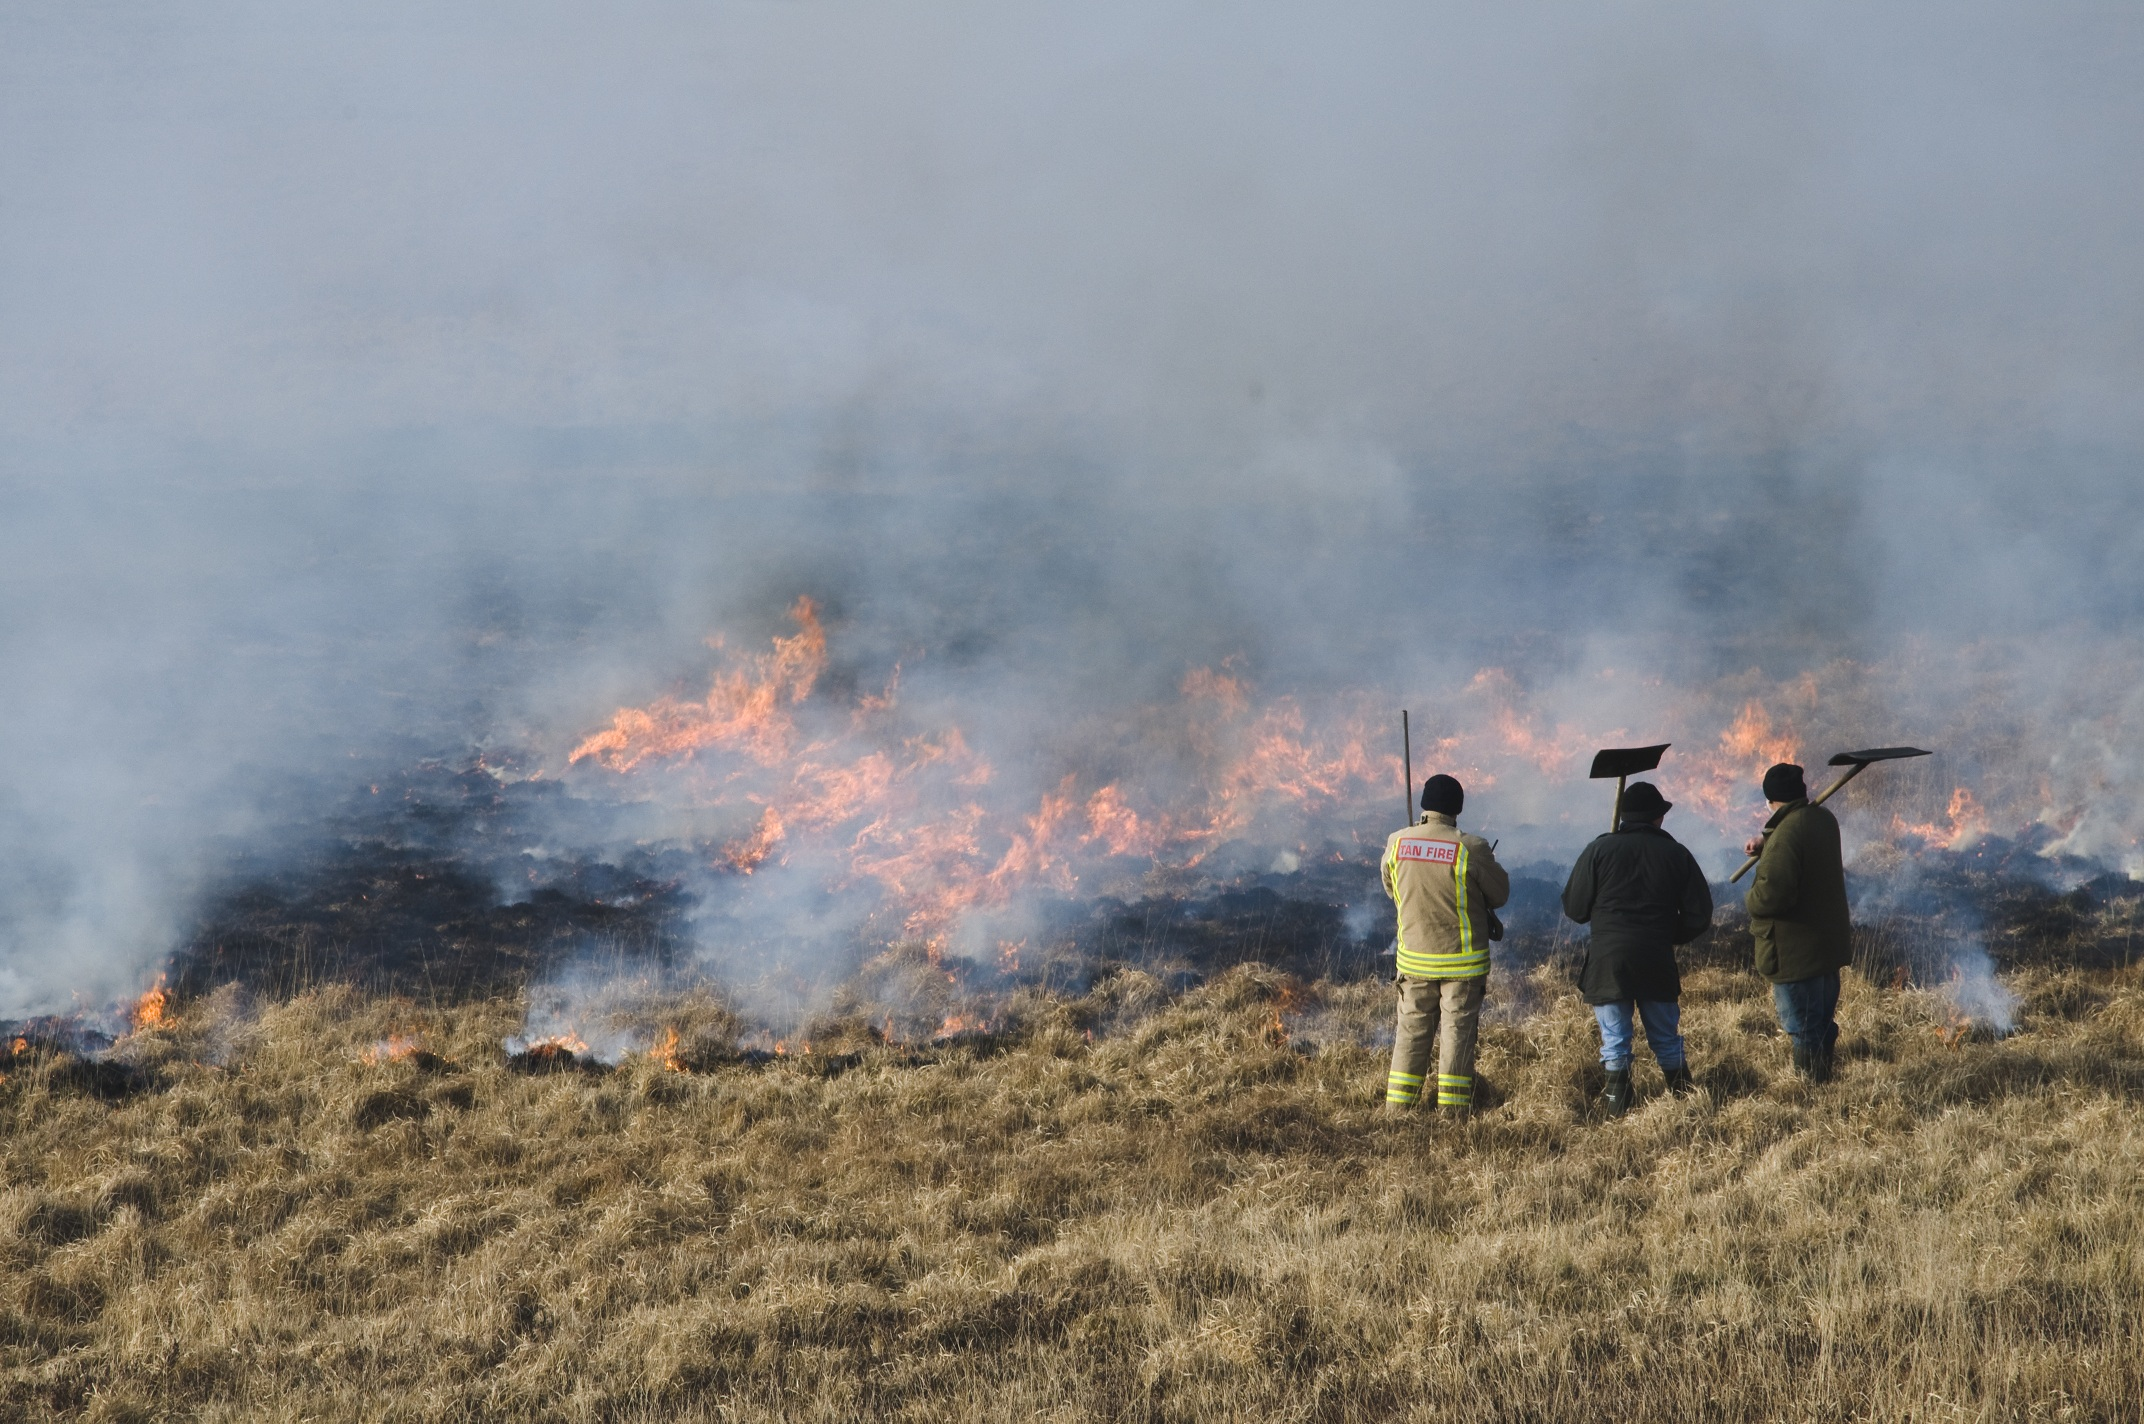 Controlled burning to protect against wildfires